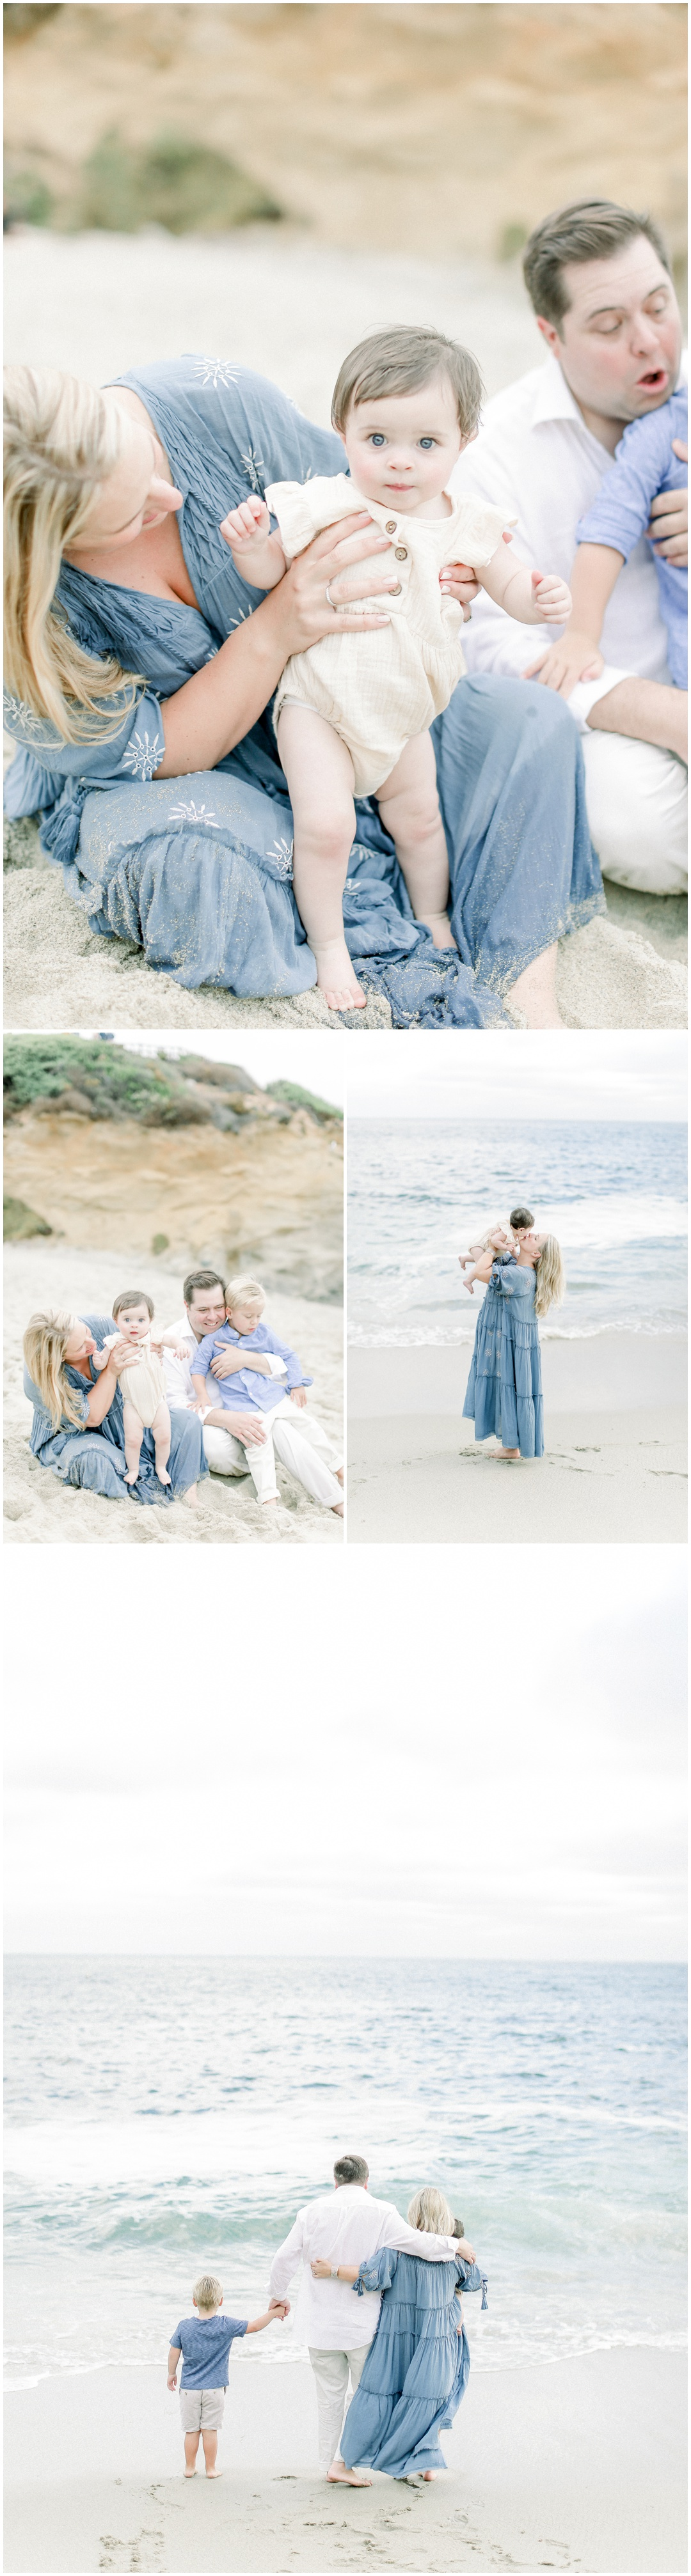 Newport+Beach+Newborn+Photographer+Orange+County+Family+Photographer+Cori+Kleckner+Photography+The+McClure+Family+Gracie+McClure_4385.jpg